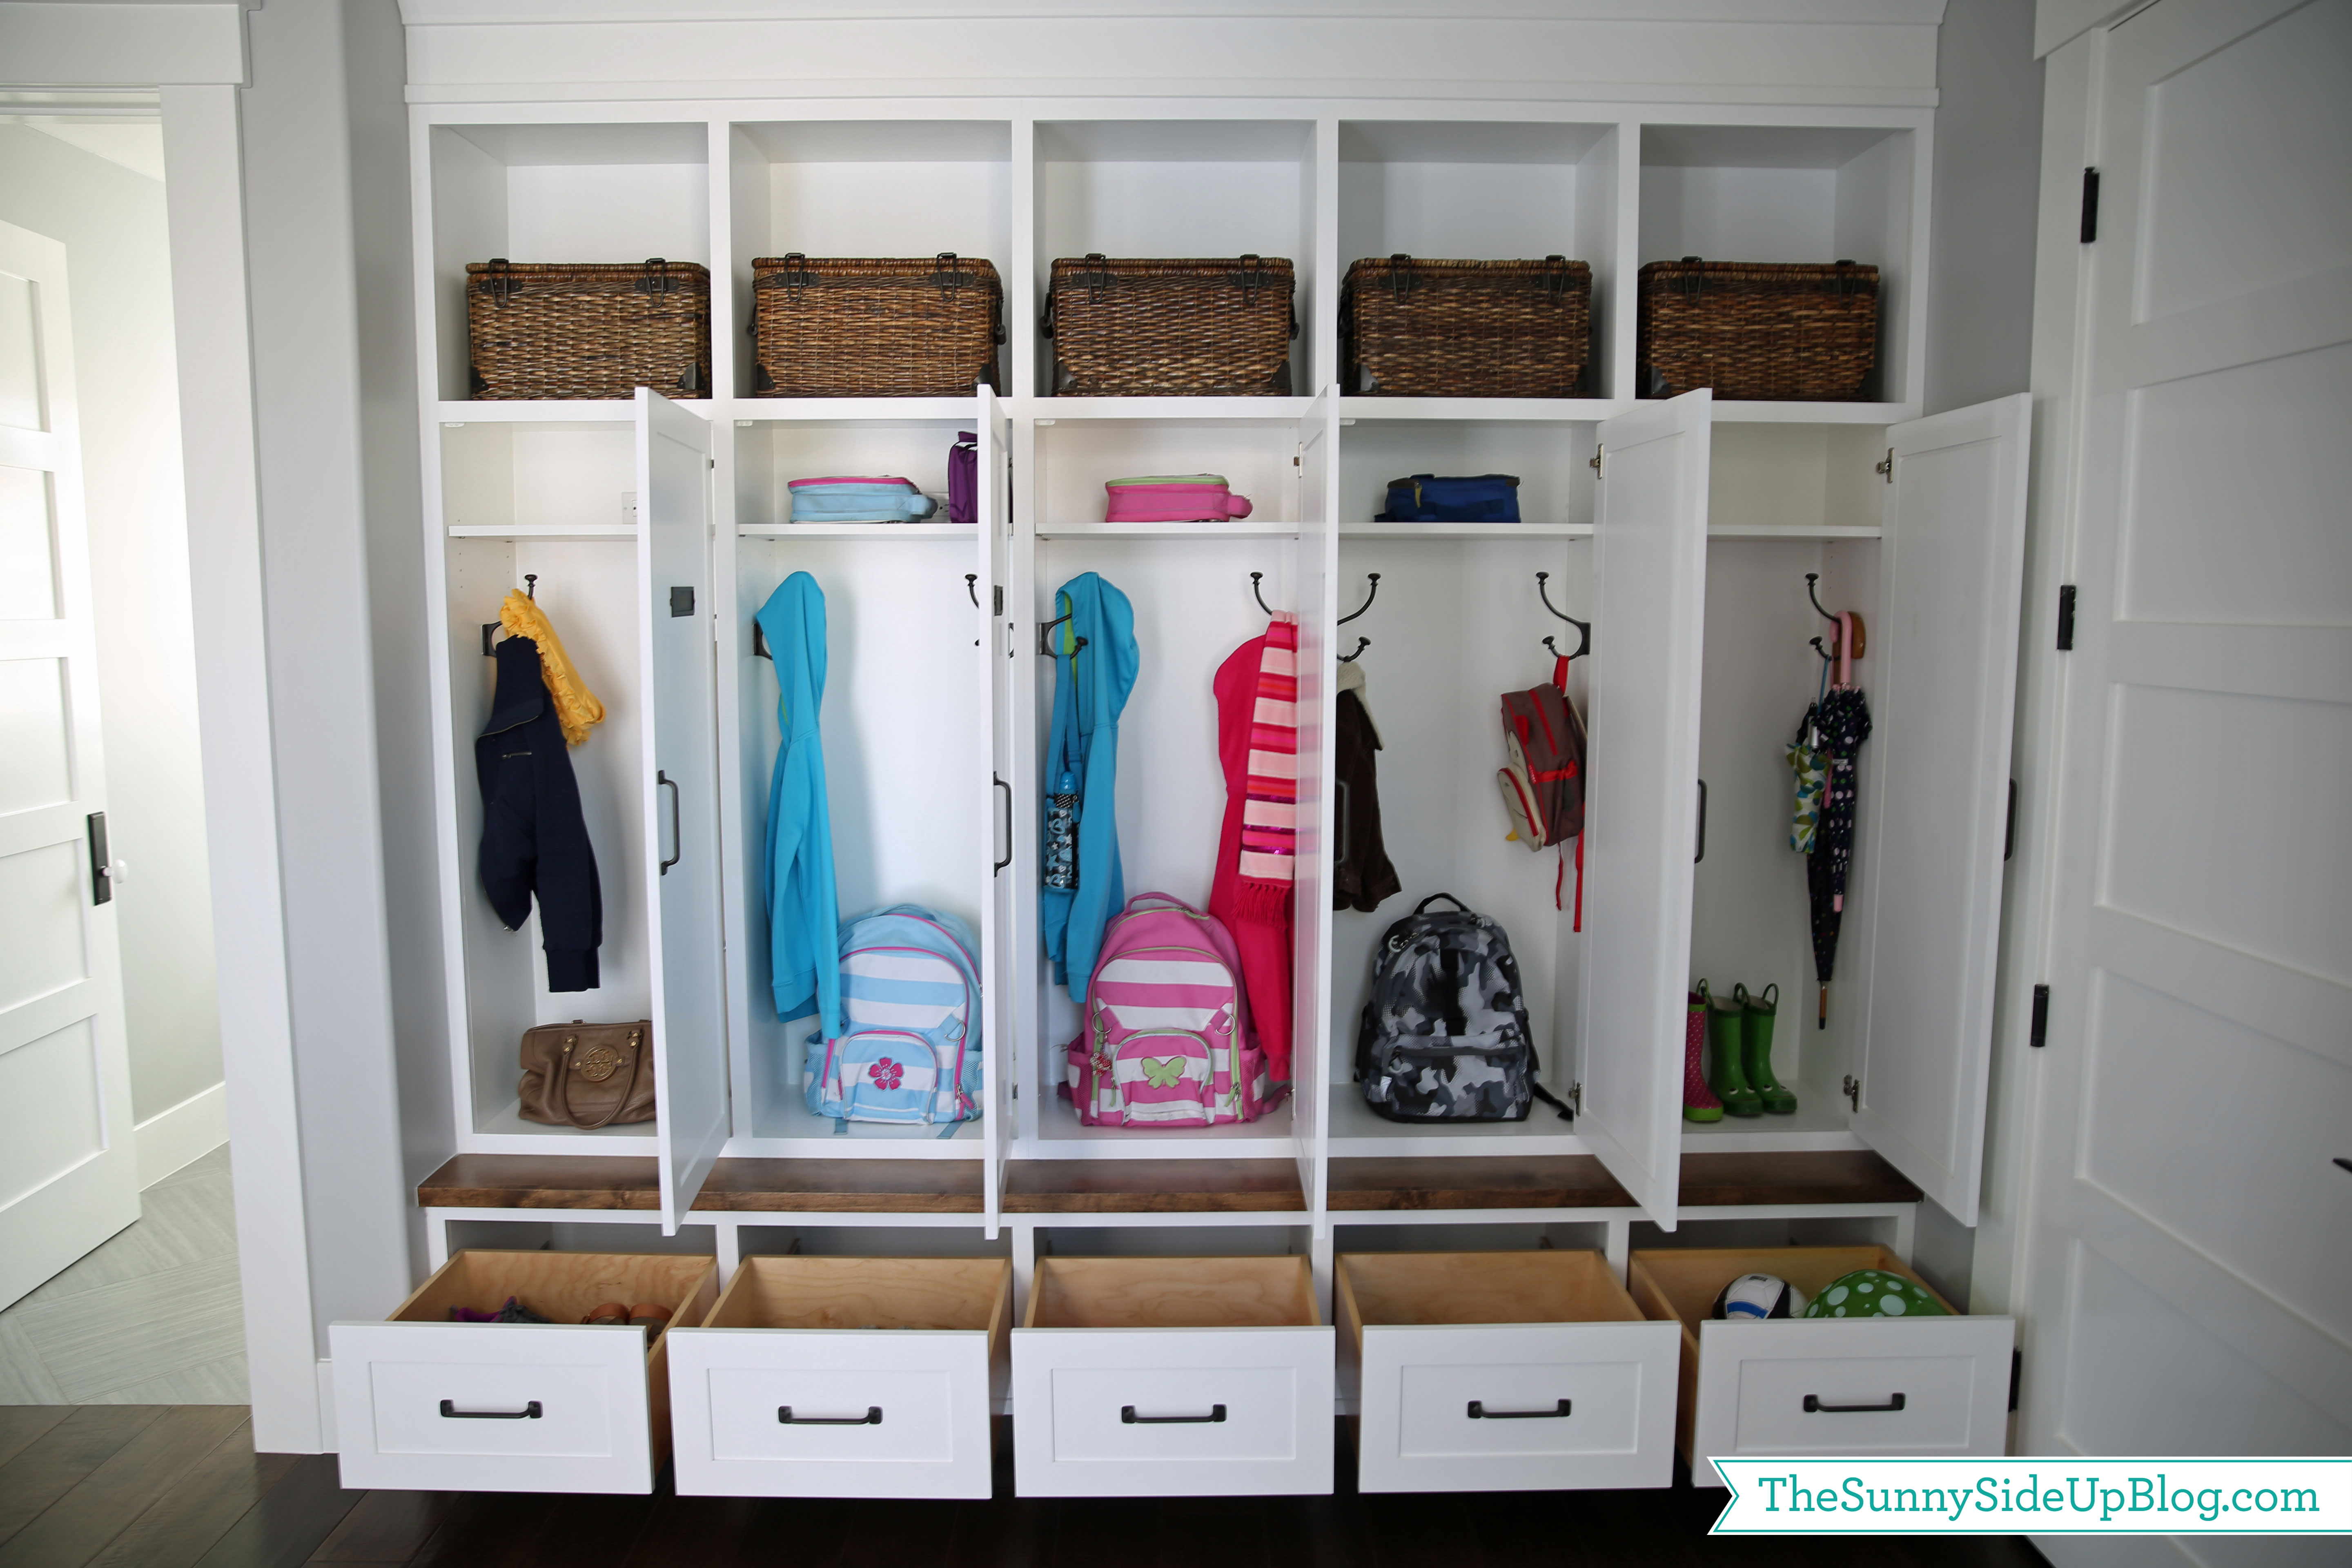 Entryway Wall Organizer Over 20 Ways To Organize Your Home And Life The Sunny